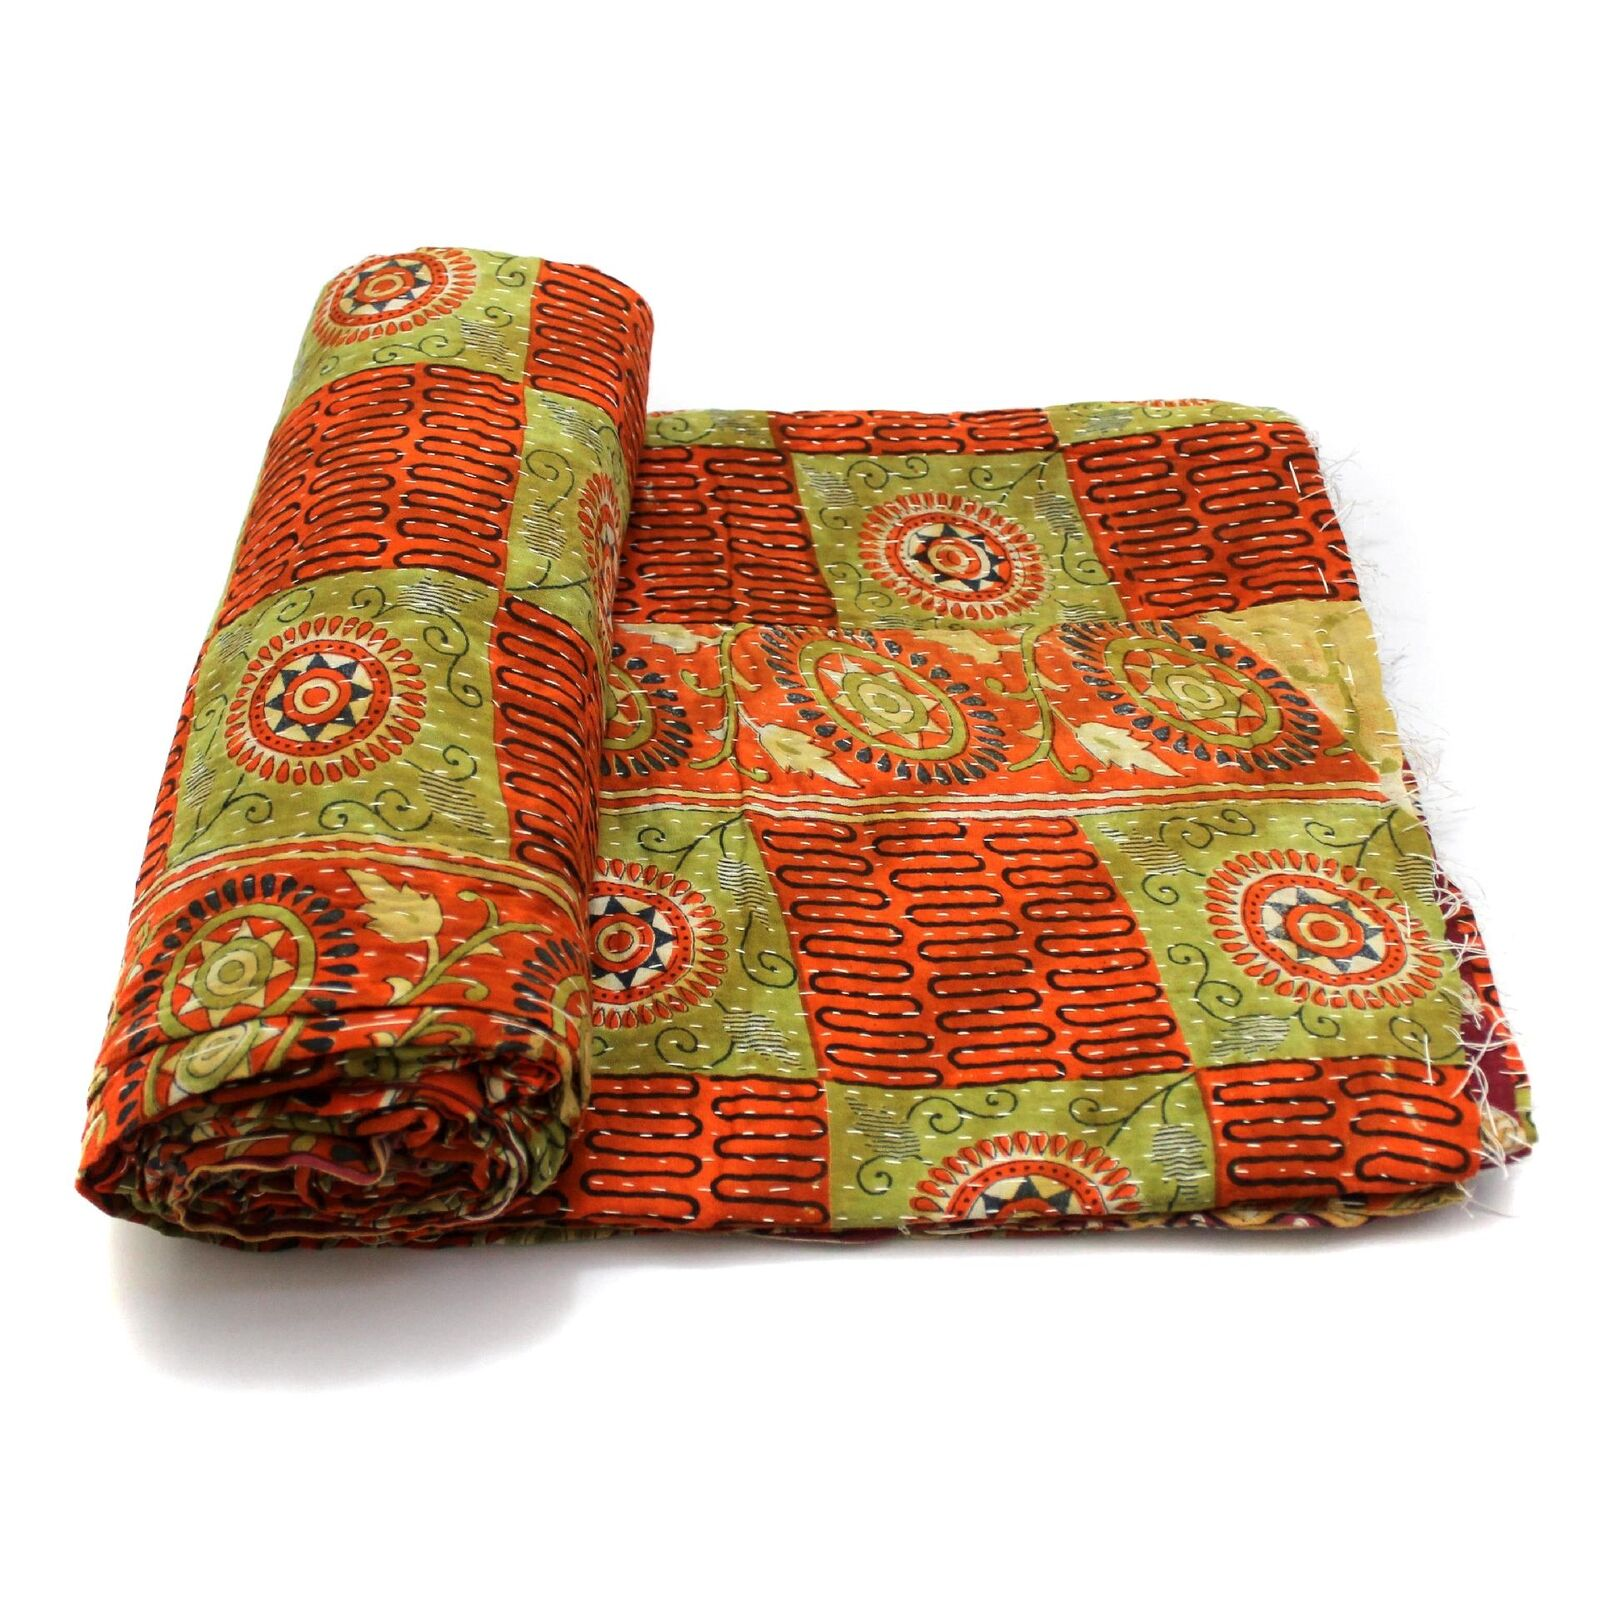 Vintage Kantha Quilt Indian Handmade Cotton Bedspread Couch Cover Bedding Throw